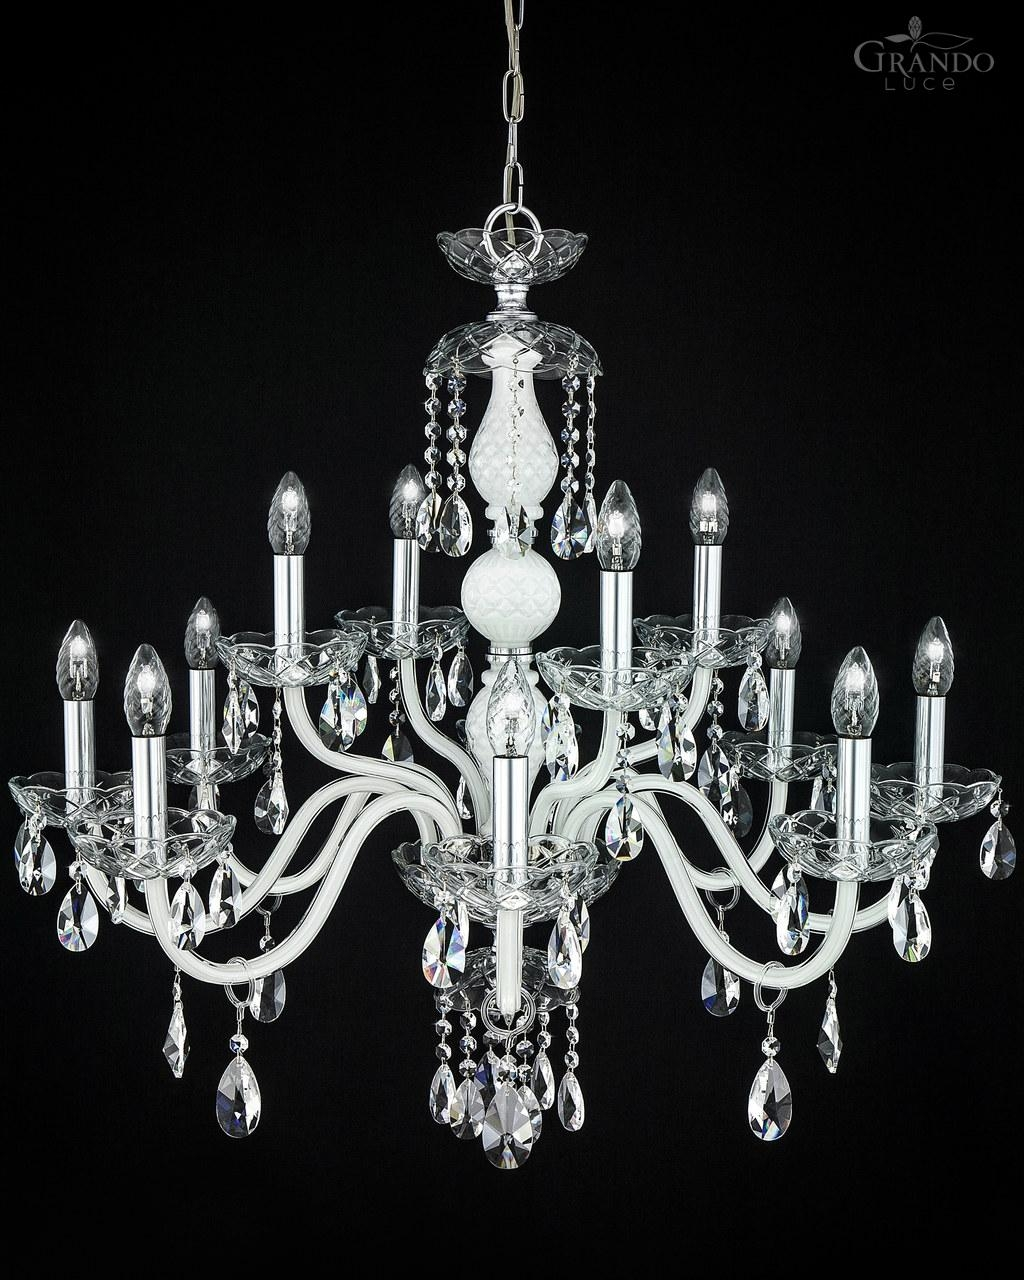 10484 Ch Chrome White Crystal Chandelier Grandoluce With Regard To White And Crystal Chandeliers (Image 2 of 25)